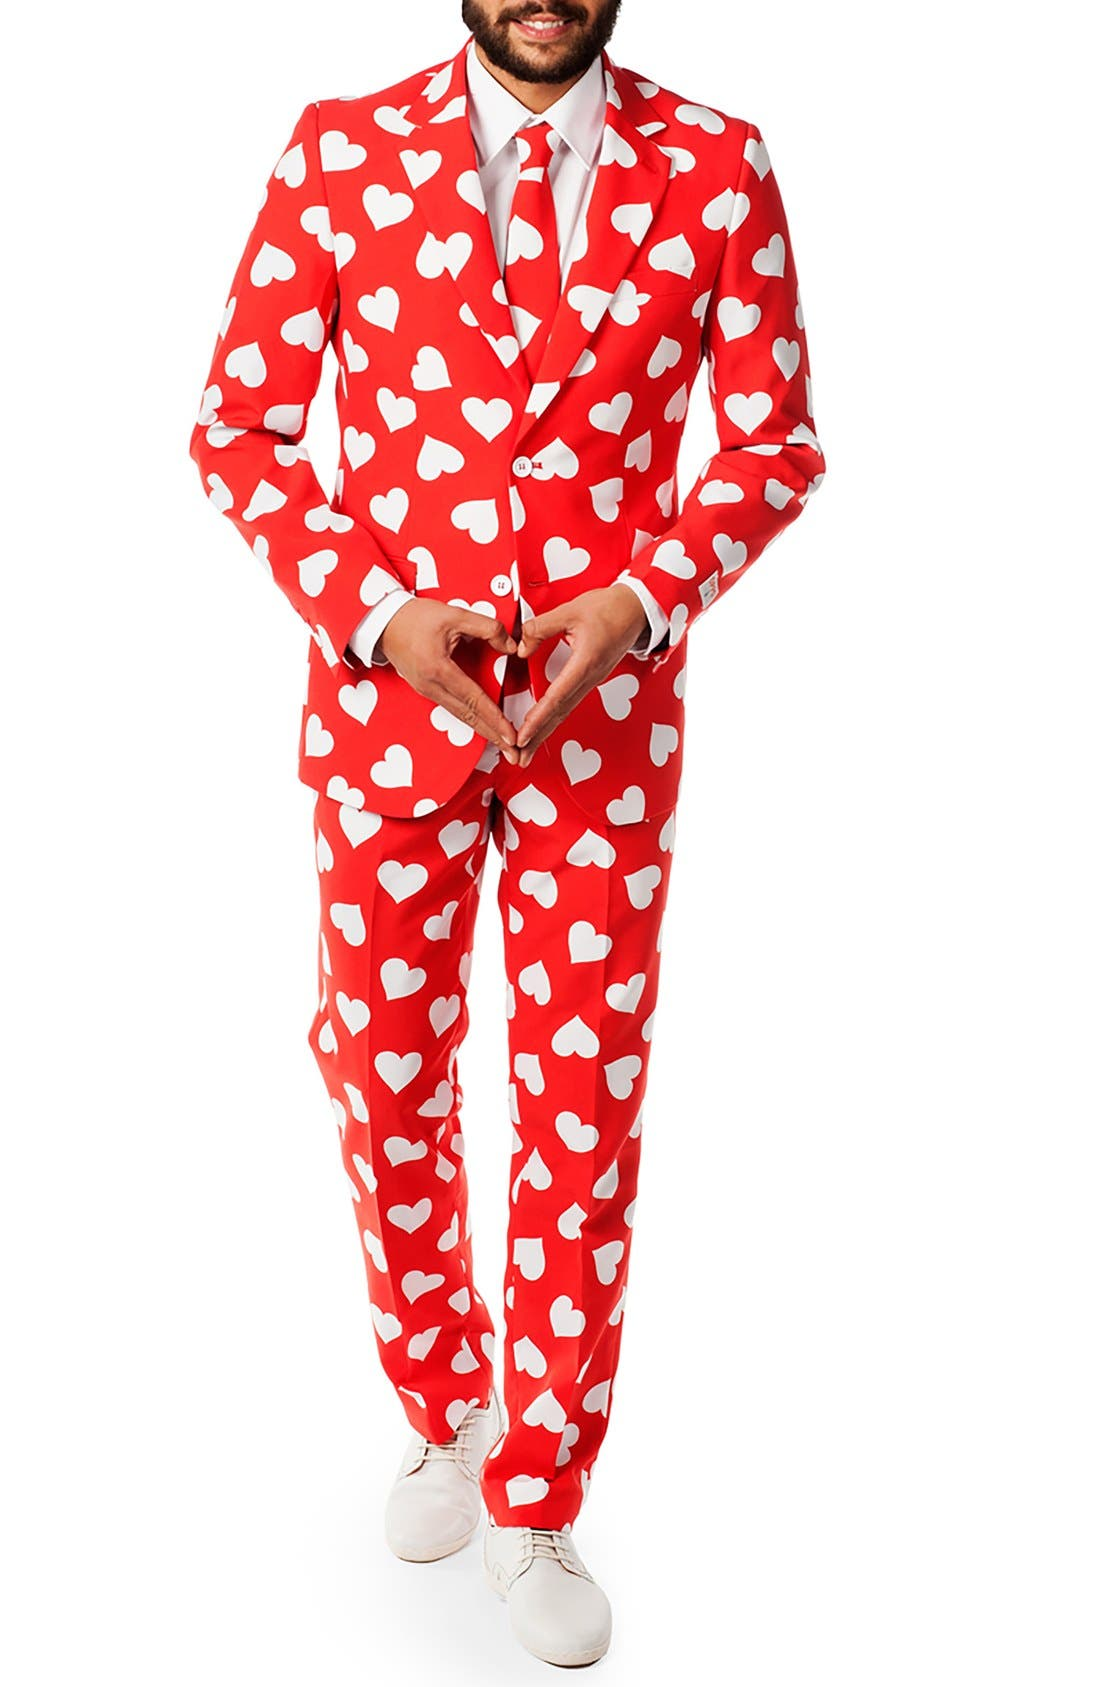 OppoSuits 'Mr. Lover Lover' Trim Fit Two-Piece Suit with Tie